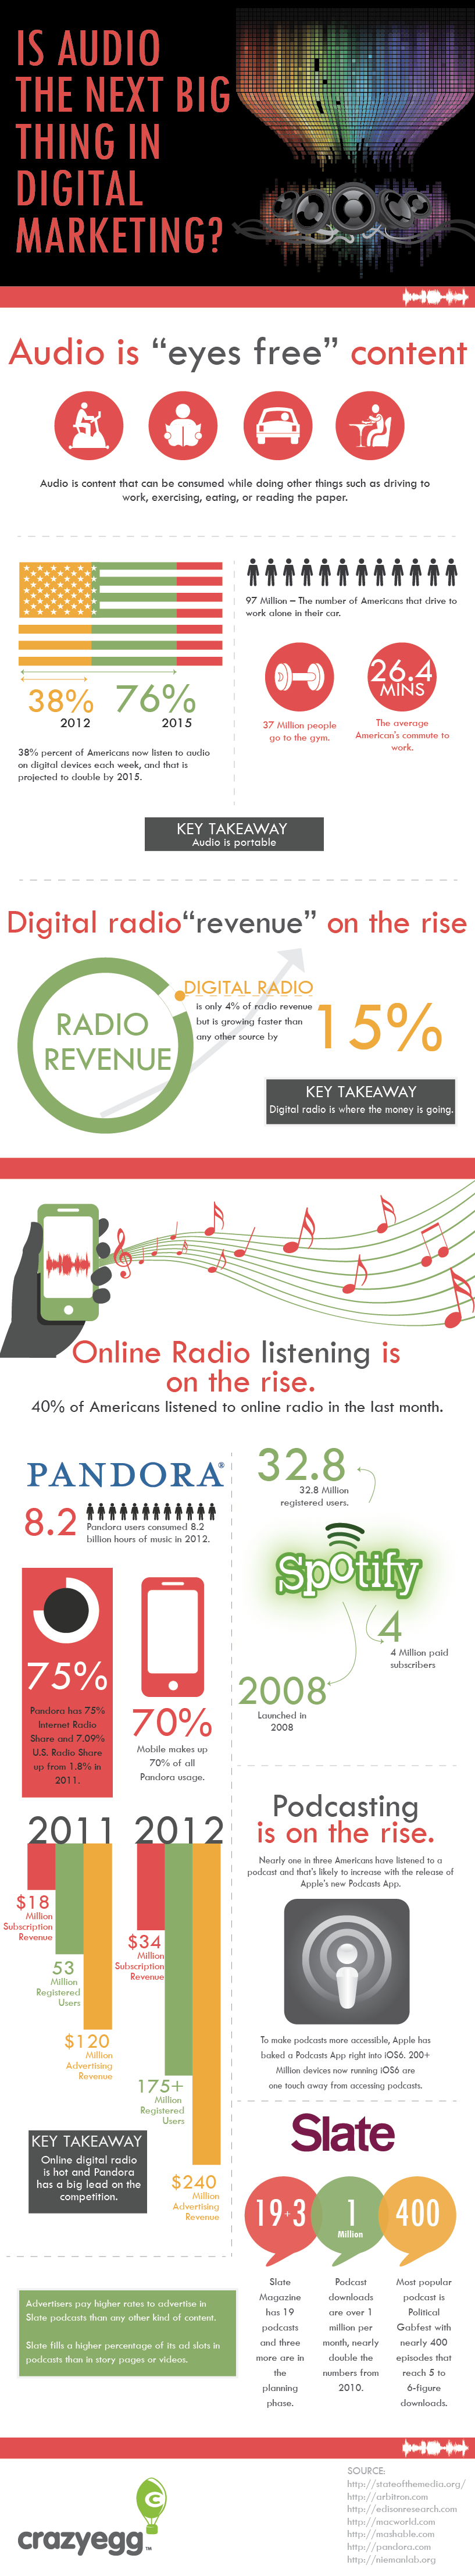 audio podcast digital marketing infographic music 